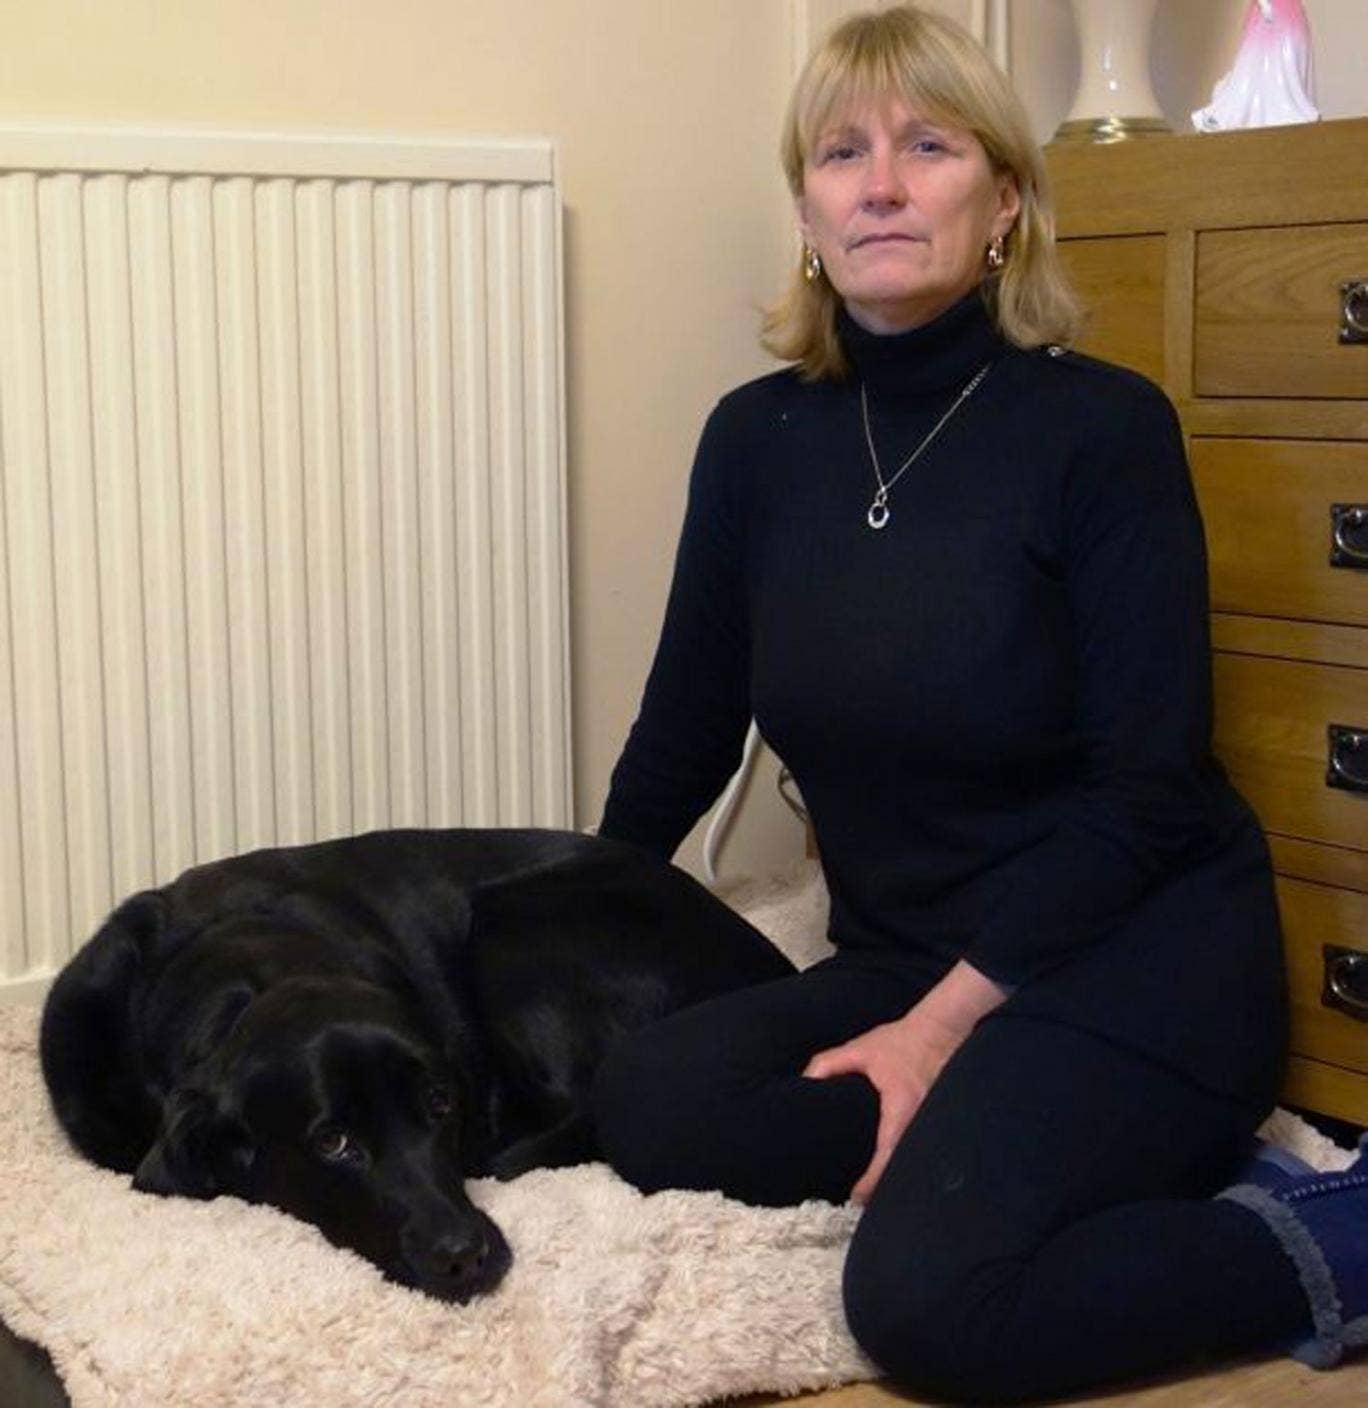 Julie Rees and her guide dog, Gwen, after the animal was brutally attacked and injured just yards from her home in Fforestfach, Swansea